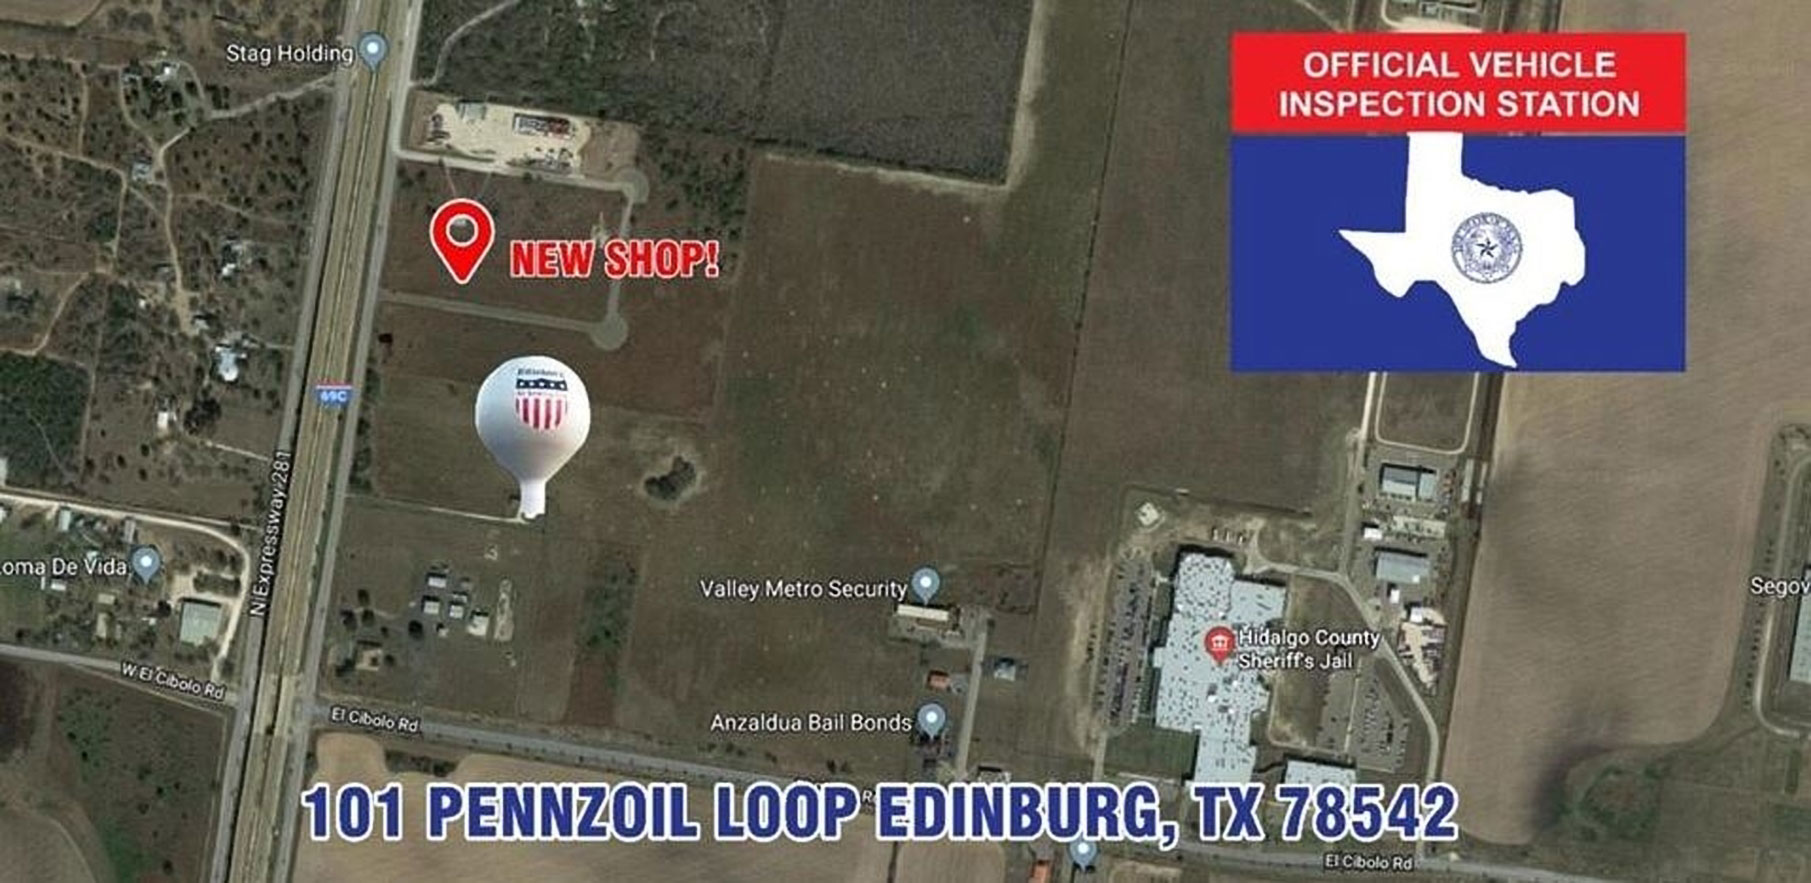 Location for the new US 281 Truck And Trailer Services truck shop In Edinburg